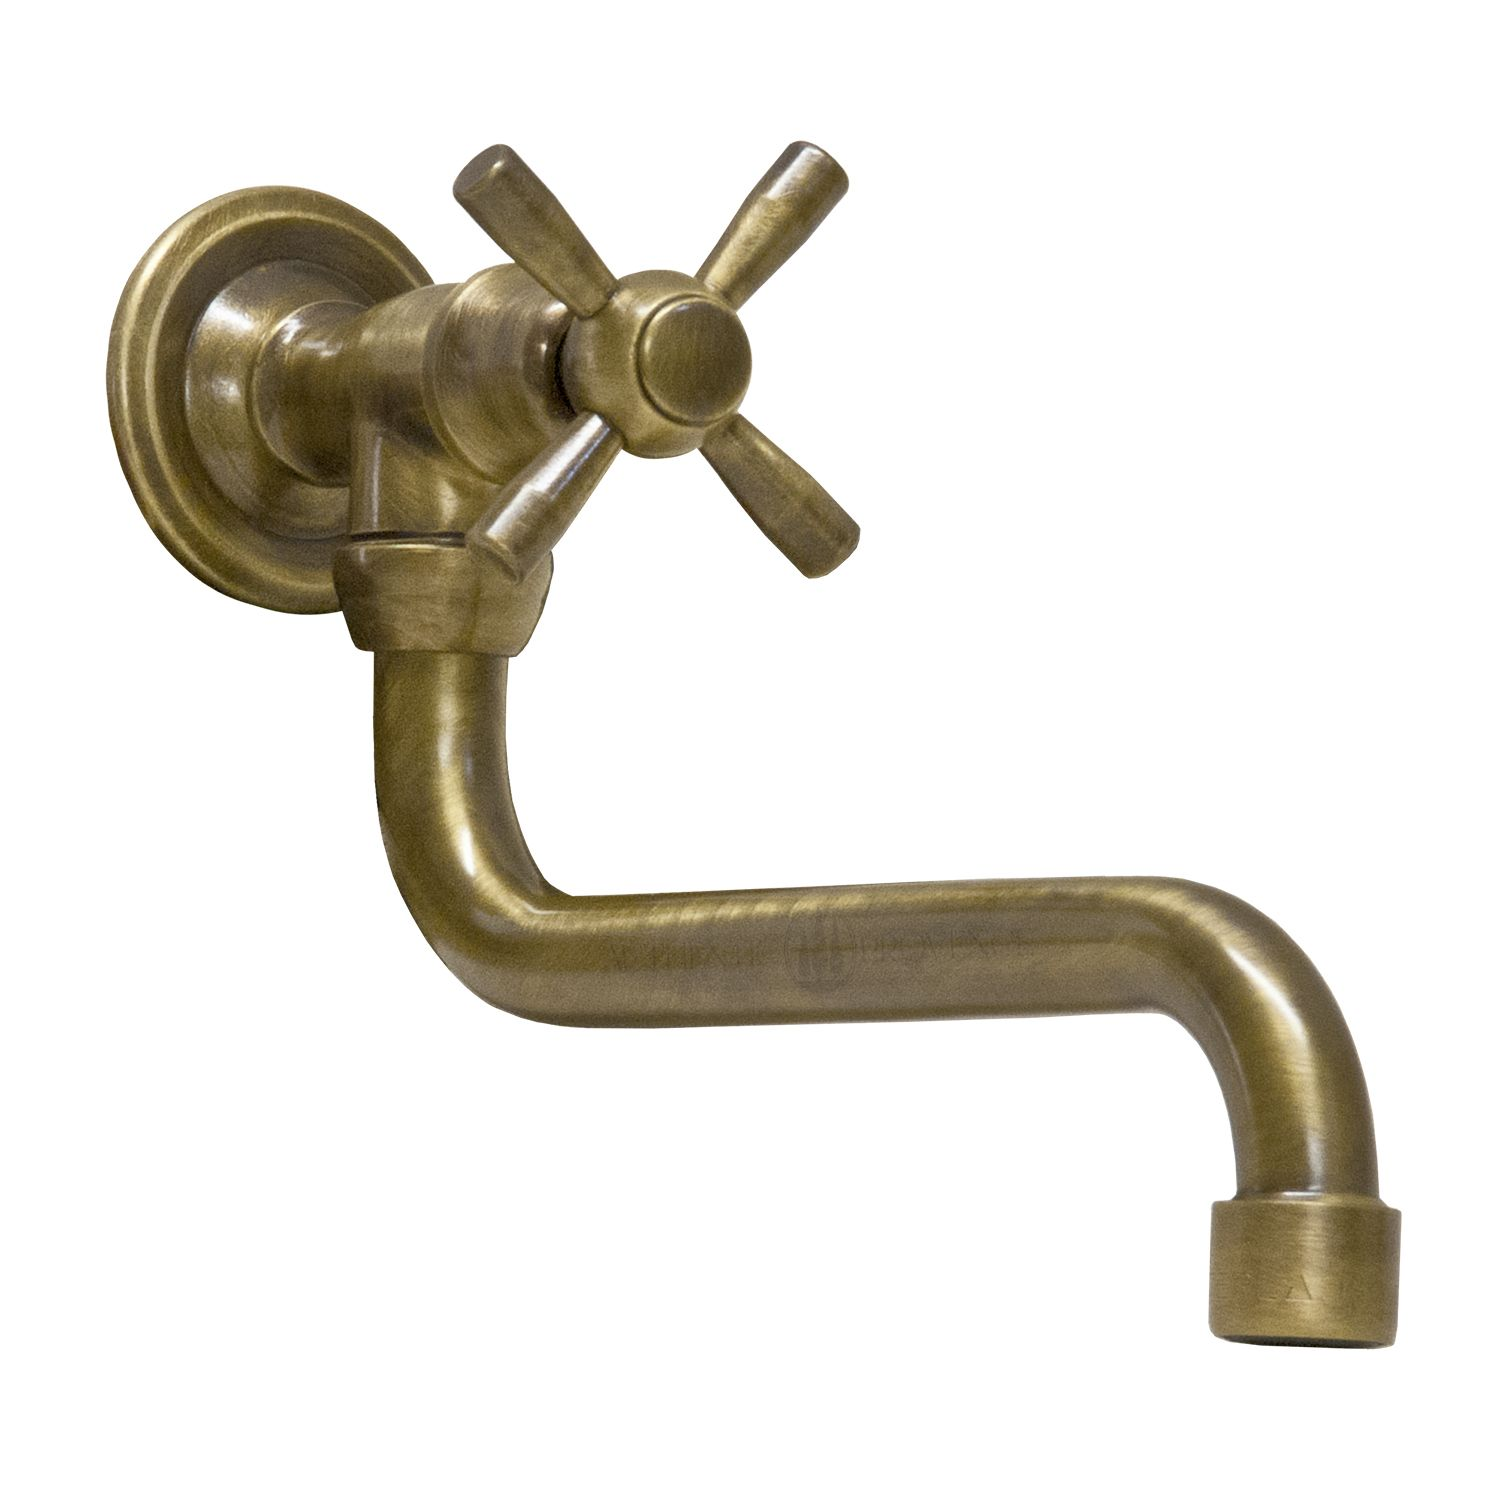 Leon Spigot With Simple Handle Authentic Provence In 2020 Wall Mount Faucet Fountain Simple